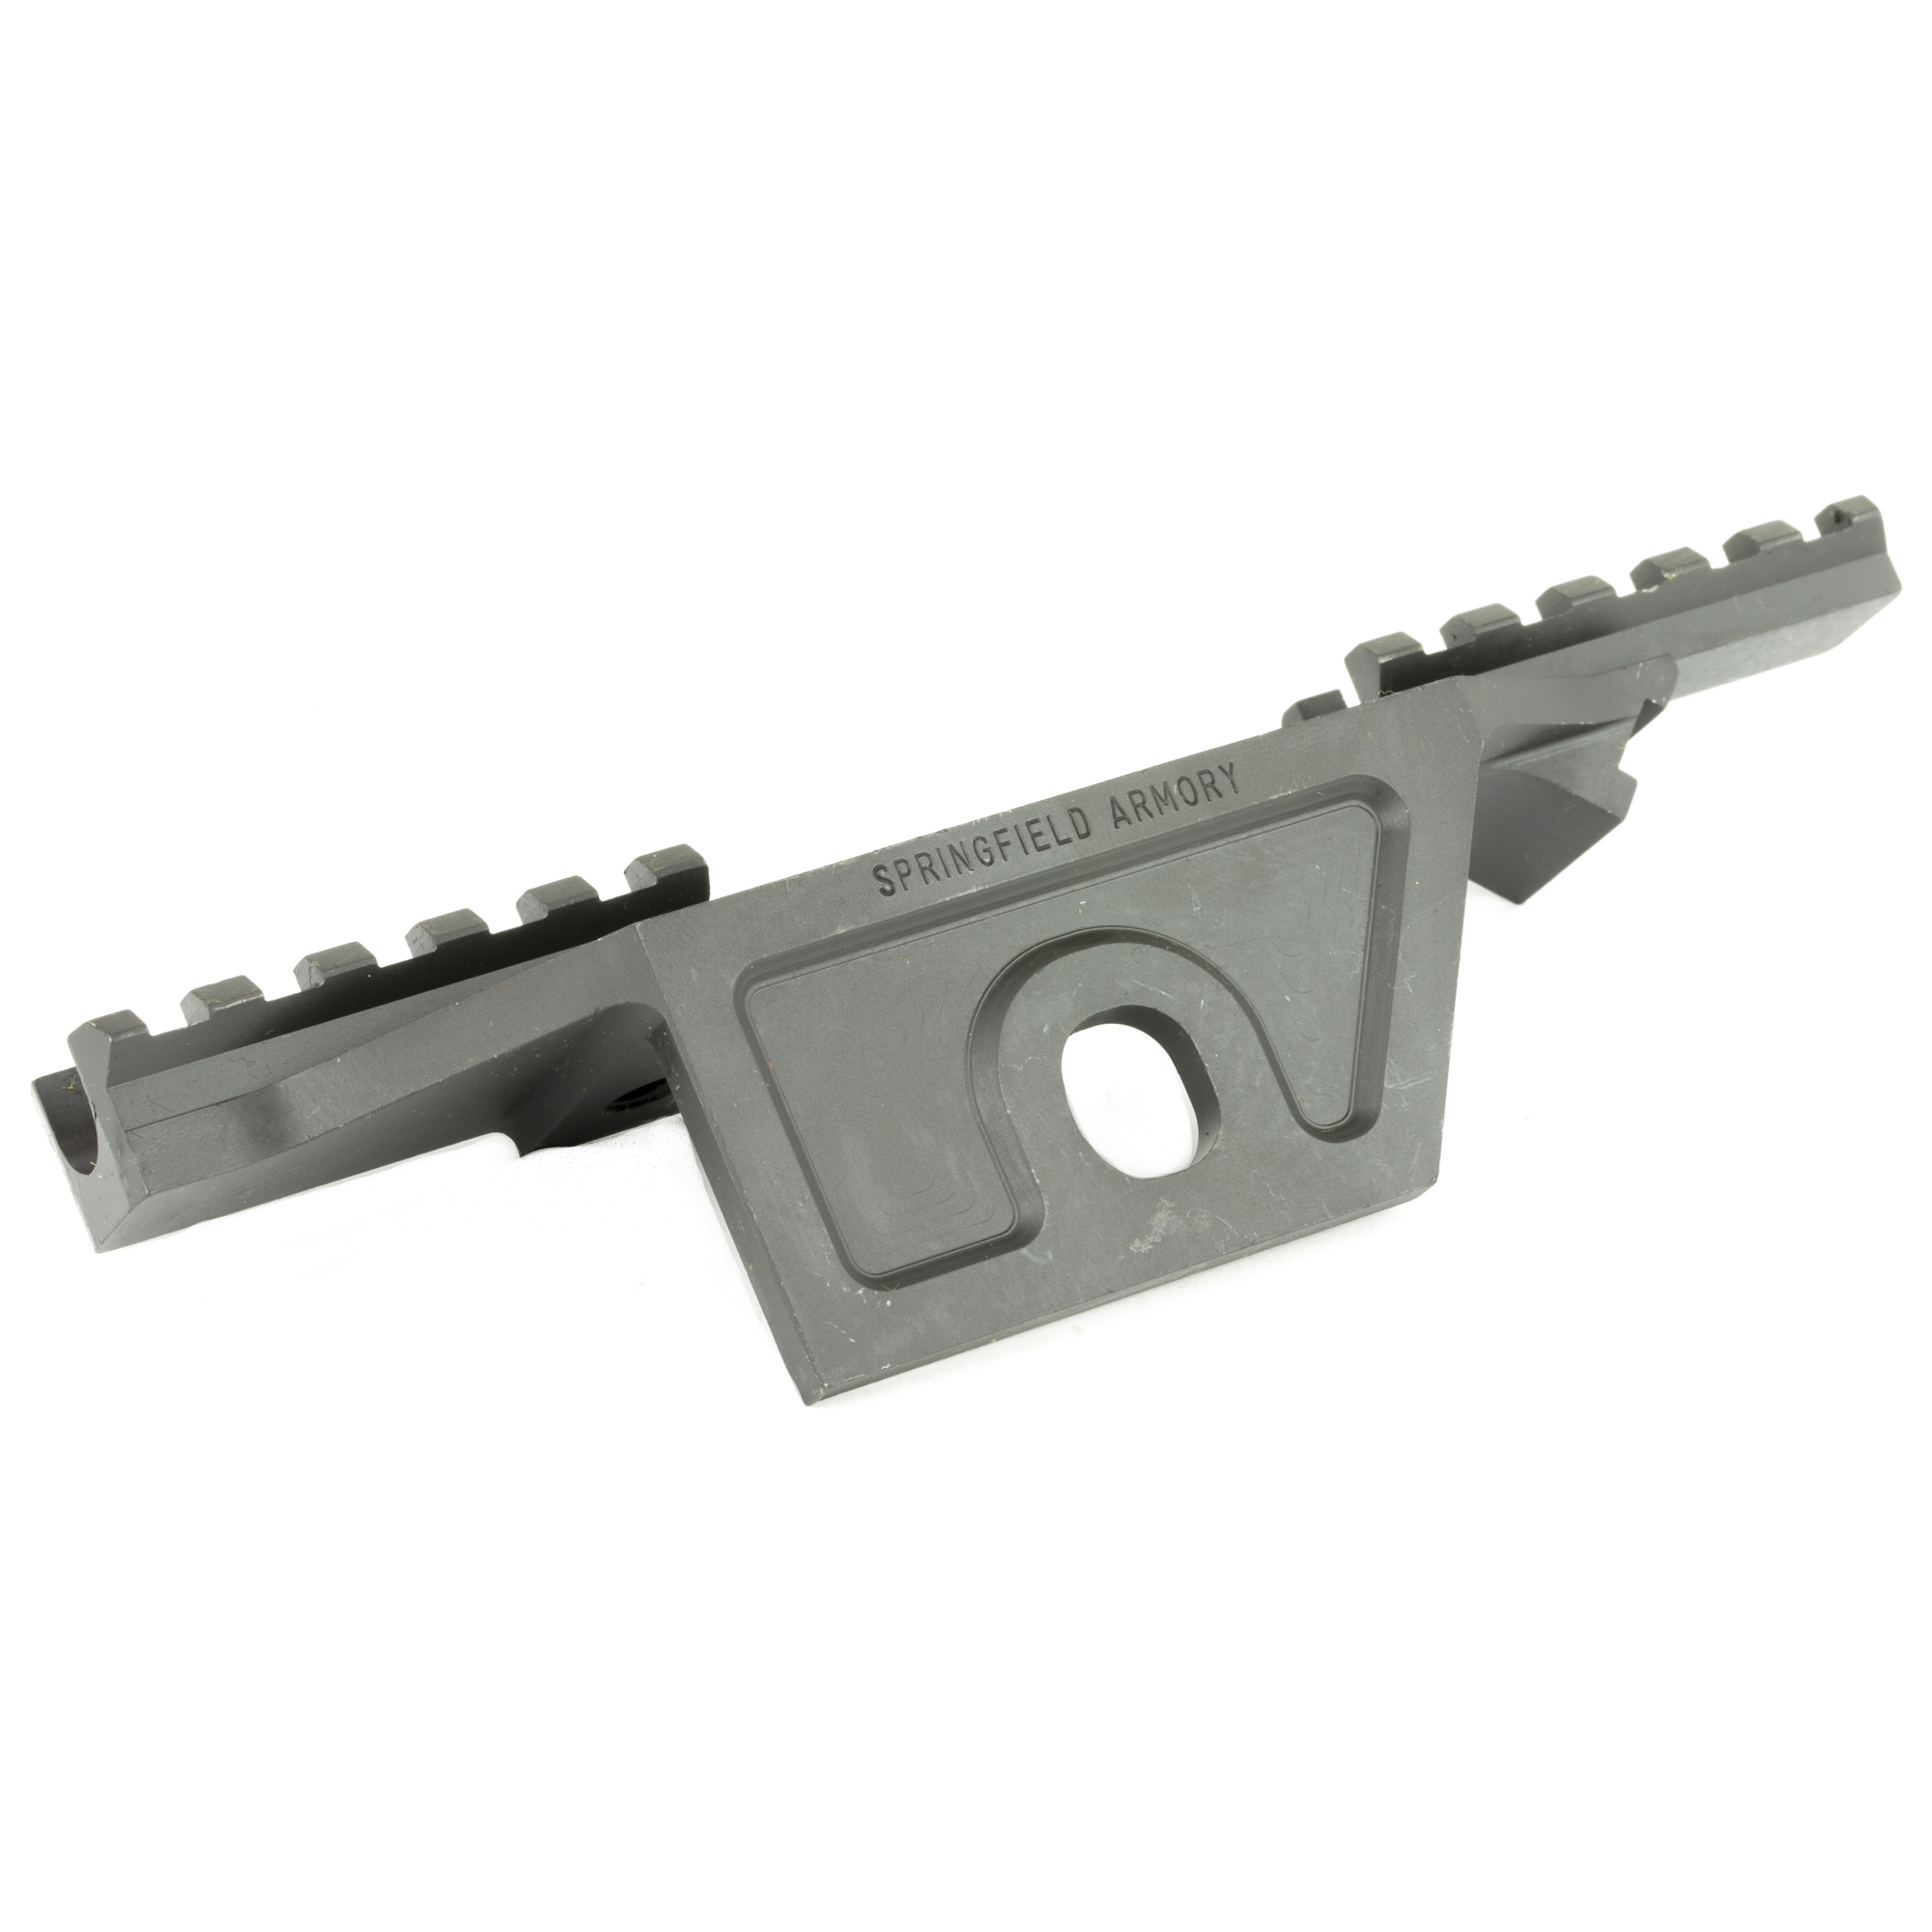 OEM 4th generation scope rail for the Springfield M1A.